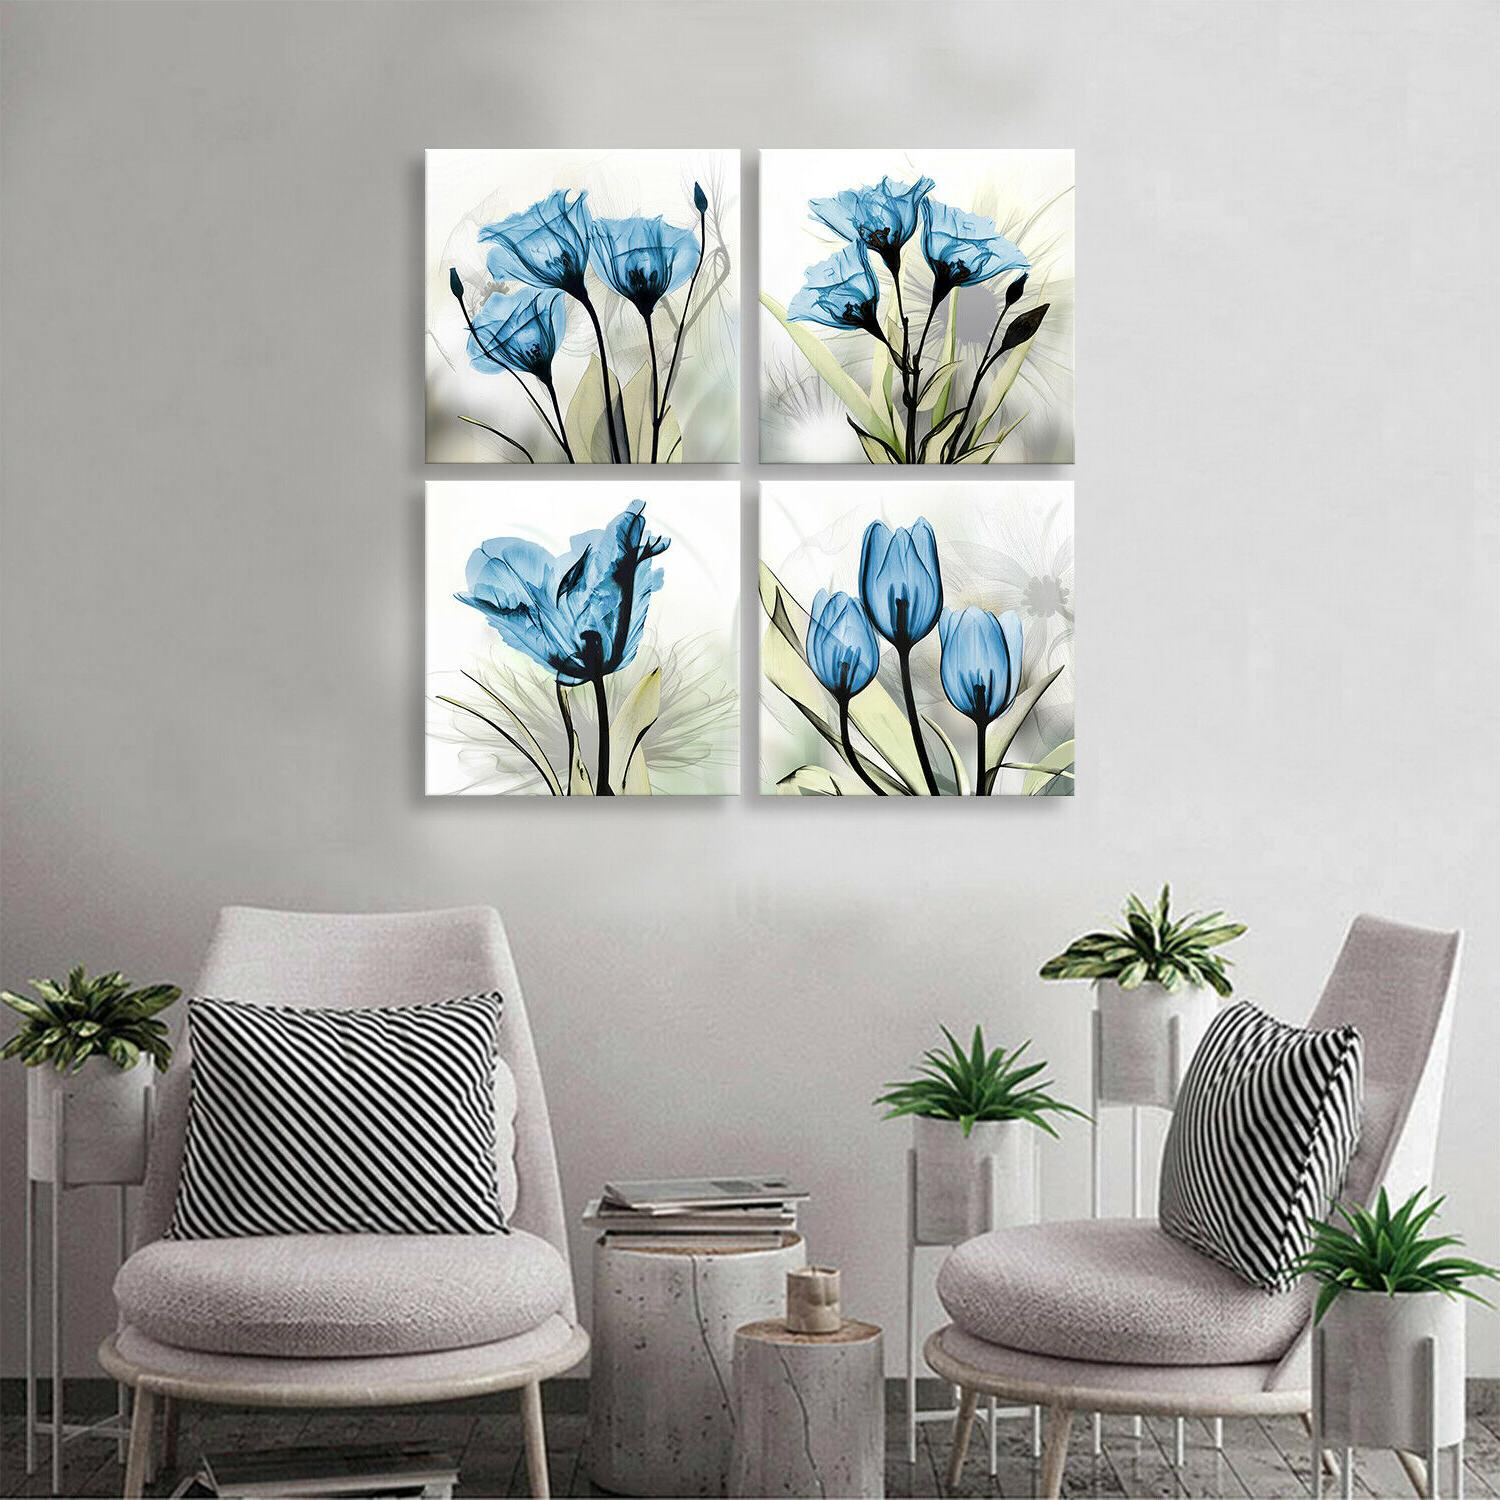 Flower Decor Blue Paintings for Bathroom